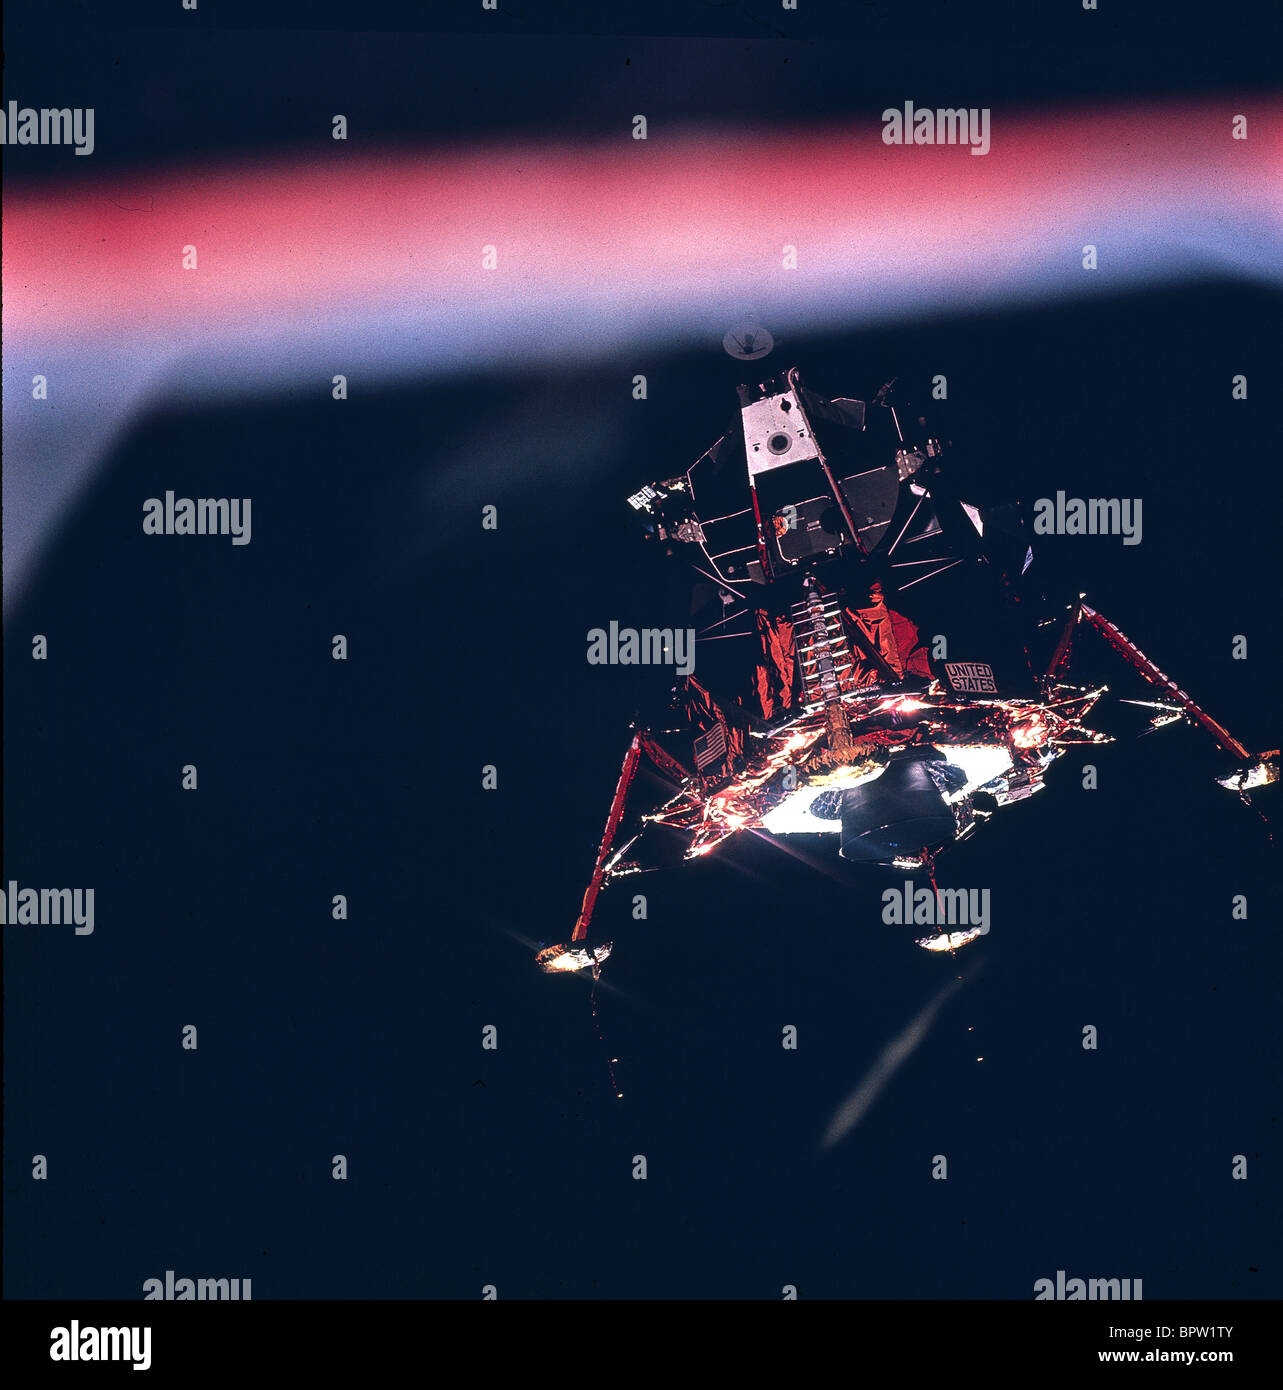 LUNAR MODULE APOLLO 11 (1969) - Stock Image